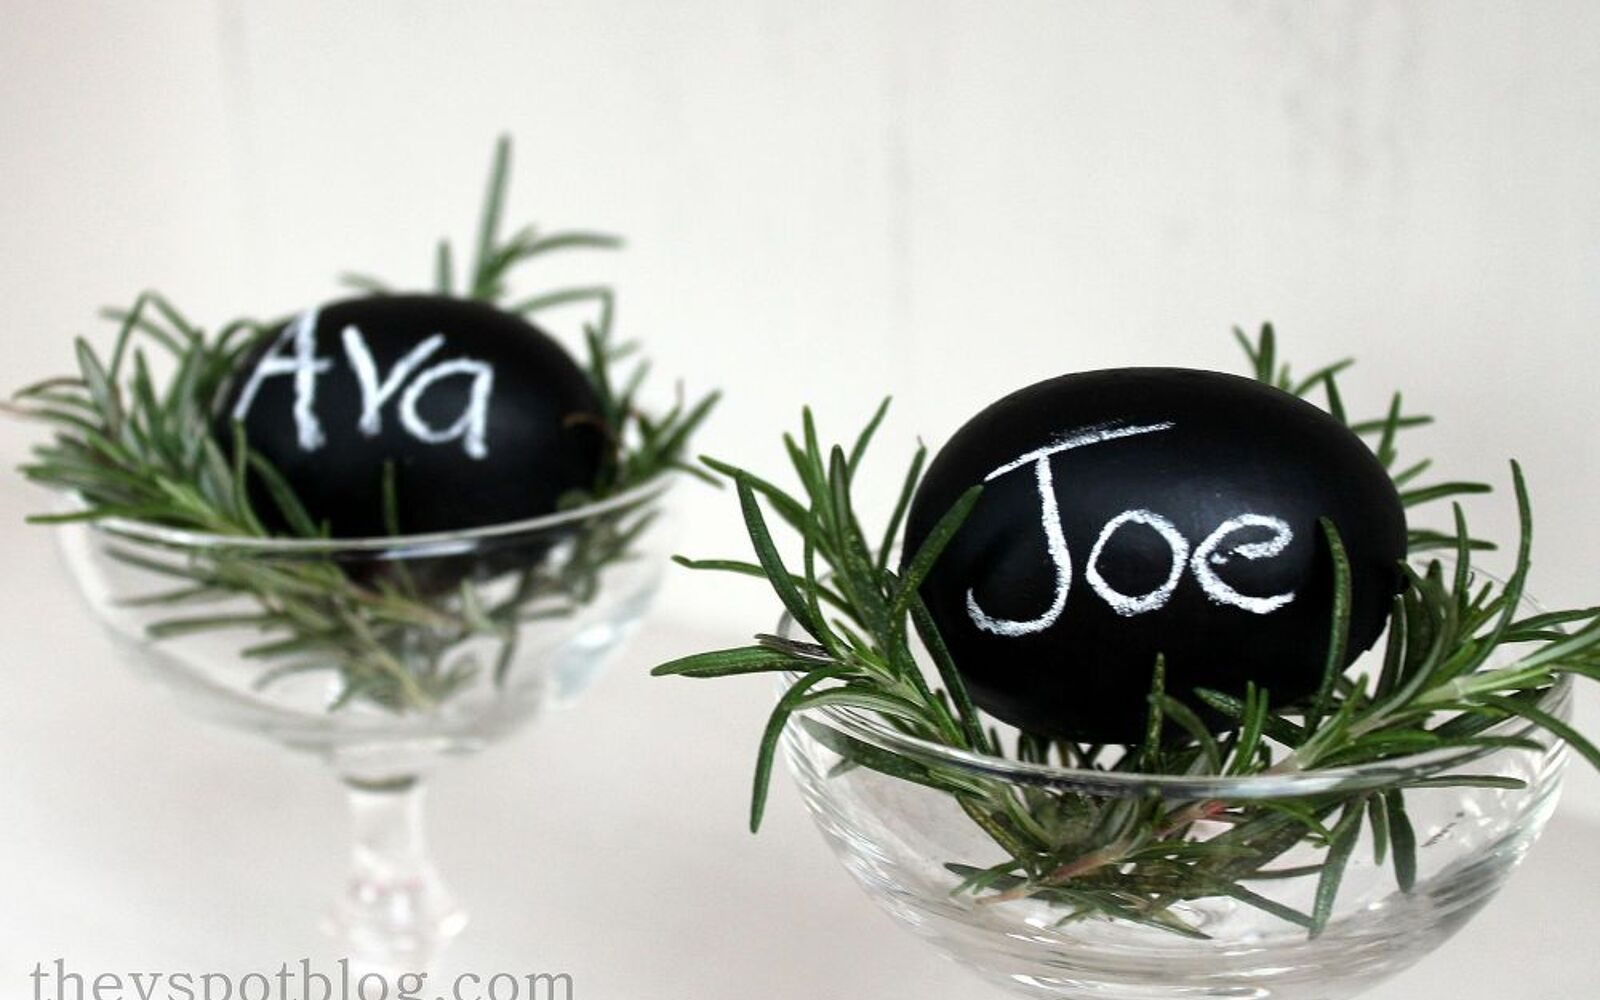 s 23 totally different ways to decorate real eggs this easter, crafts, easter decorations, Coat some eggs in chalkboard paint